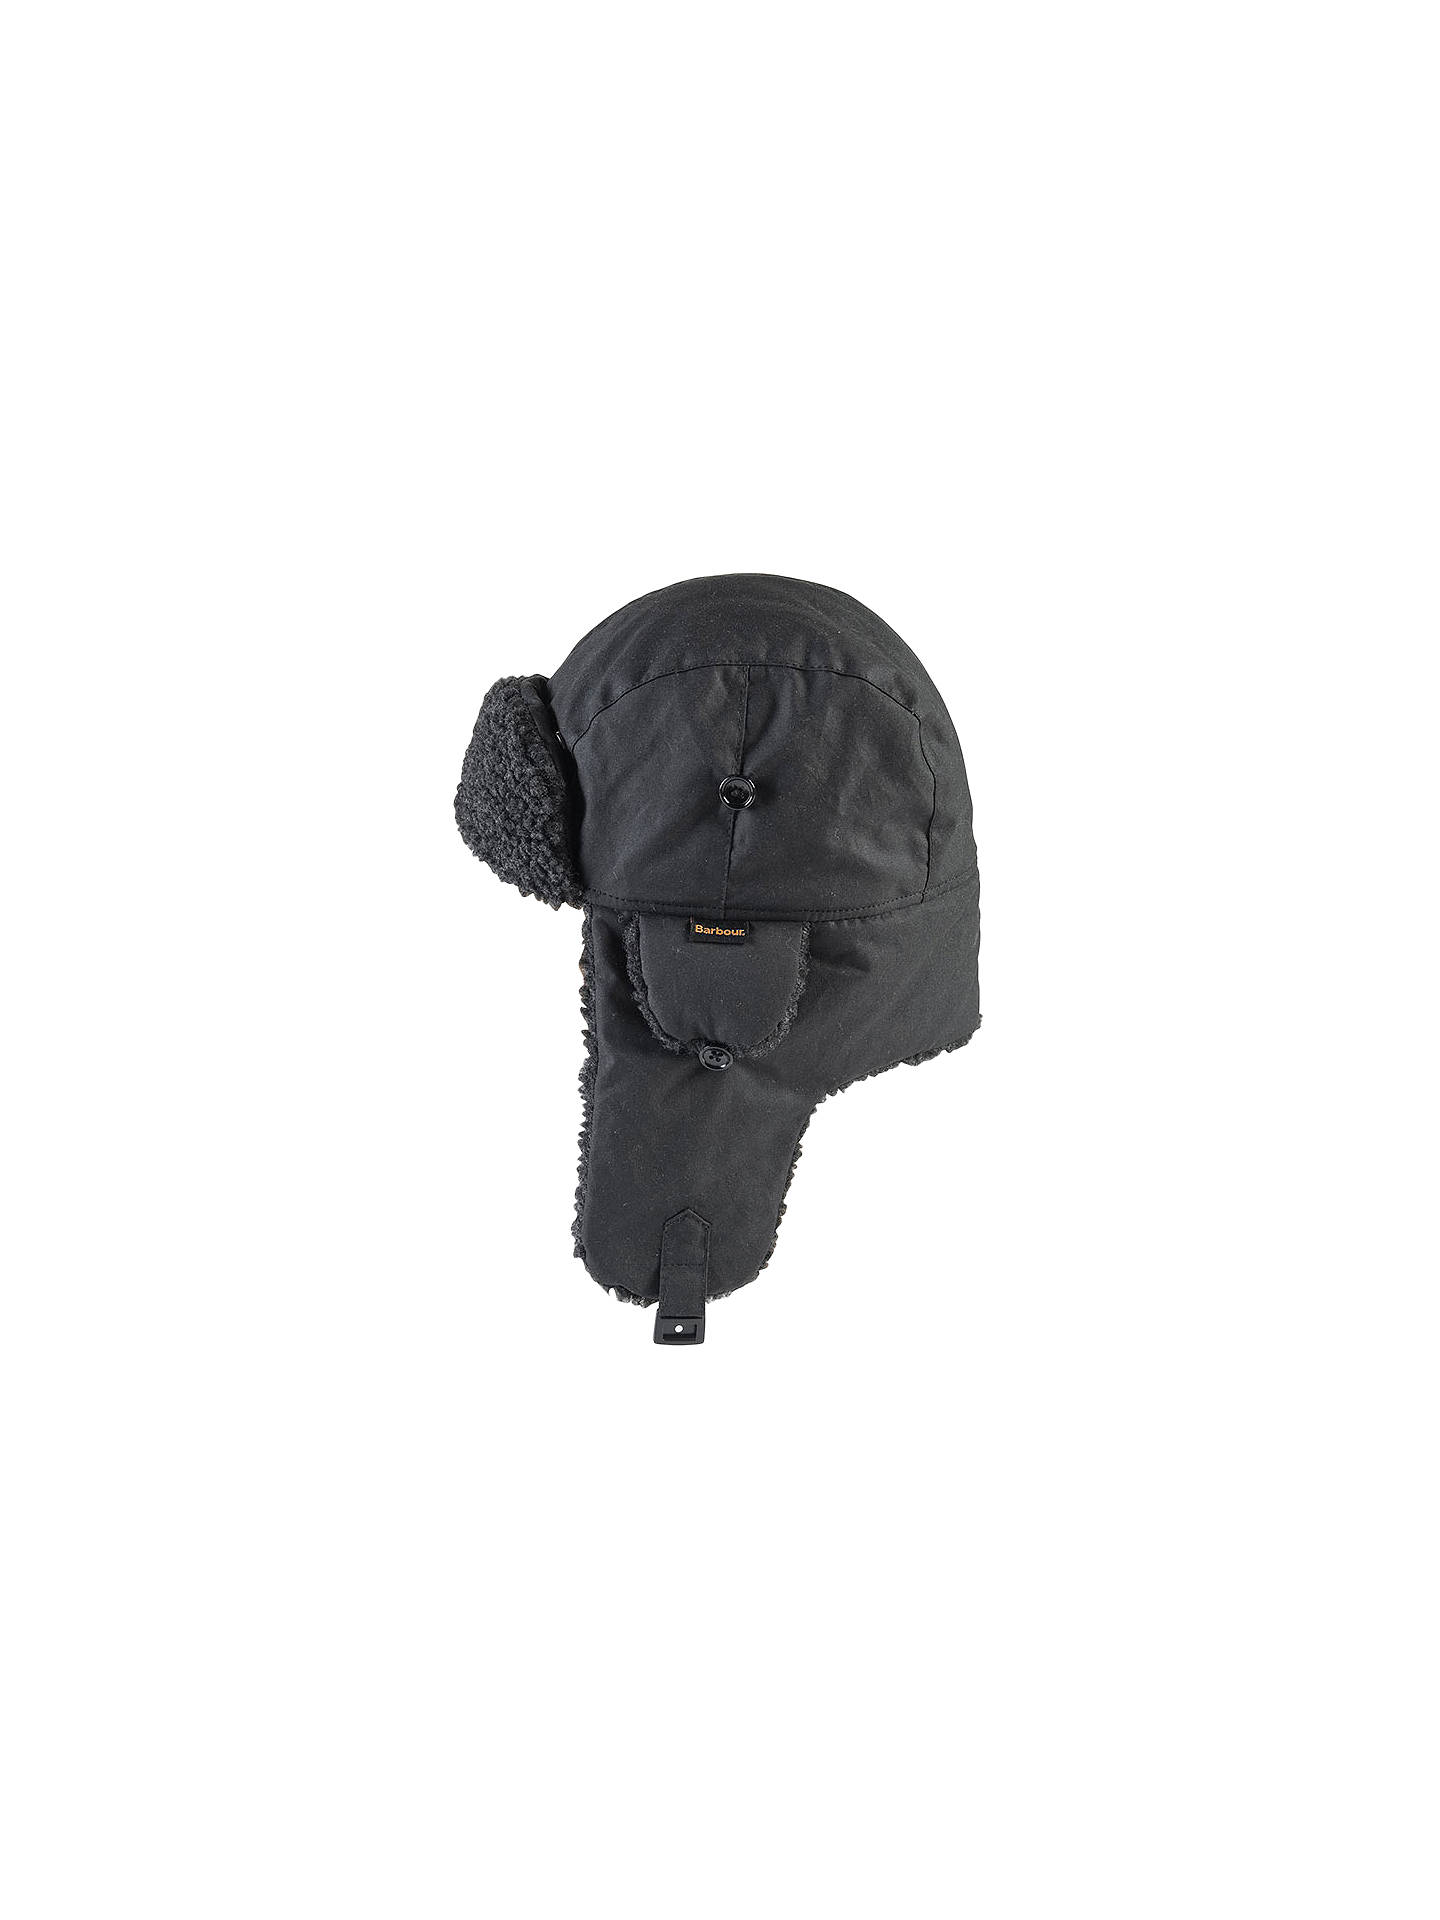 35da5fcfcb0 Barbour Fleece Lined Trapper Hat at John Lewis   Partners